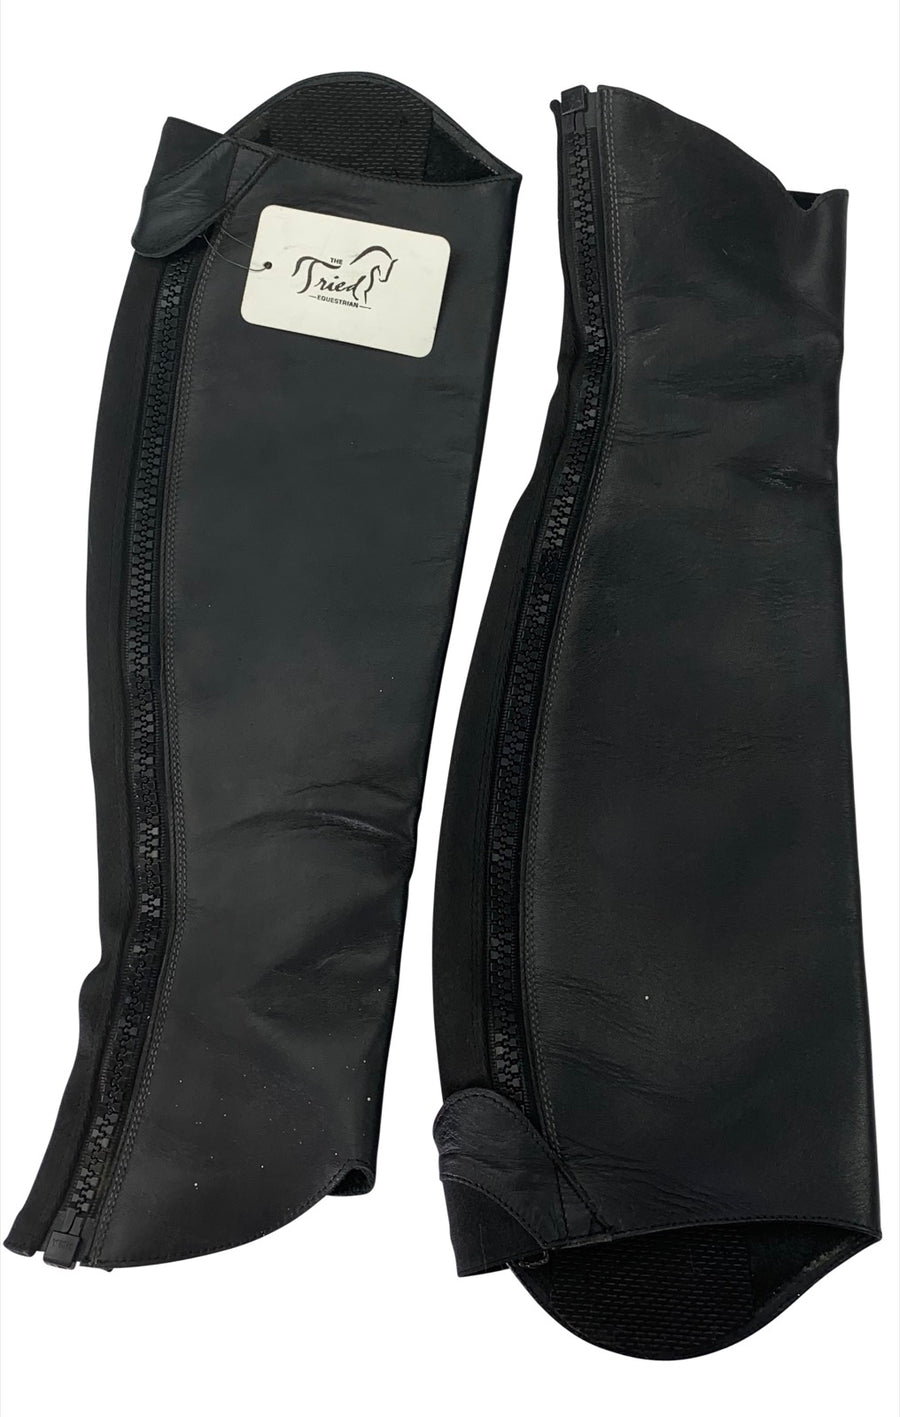 Inside of Tucci Time Harley Half Chaps in Black